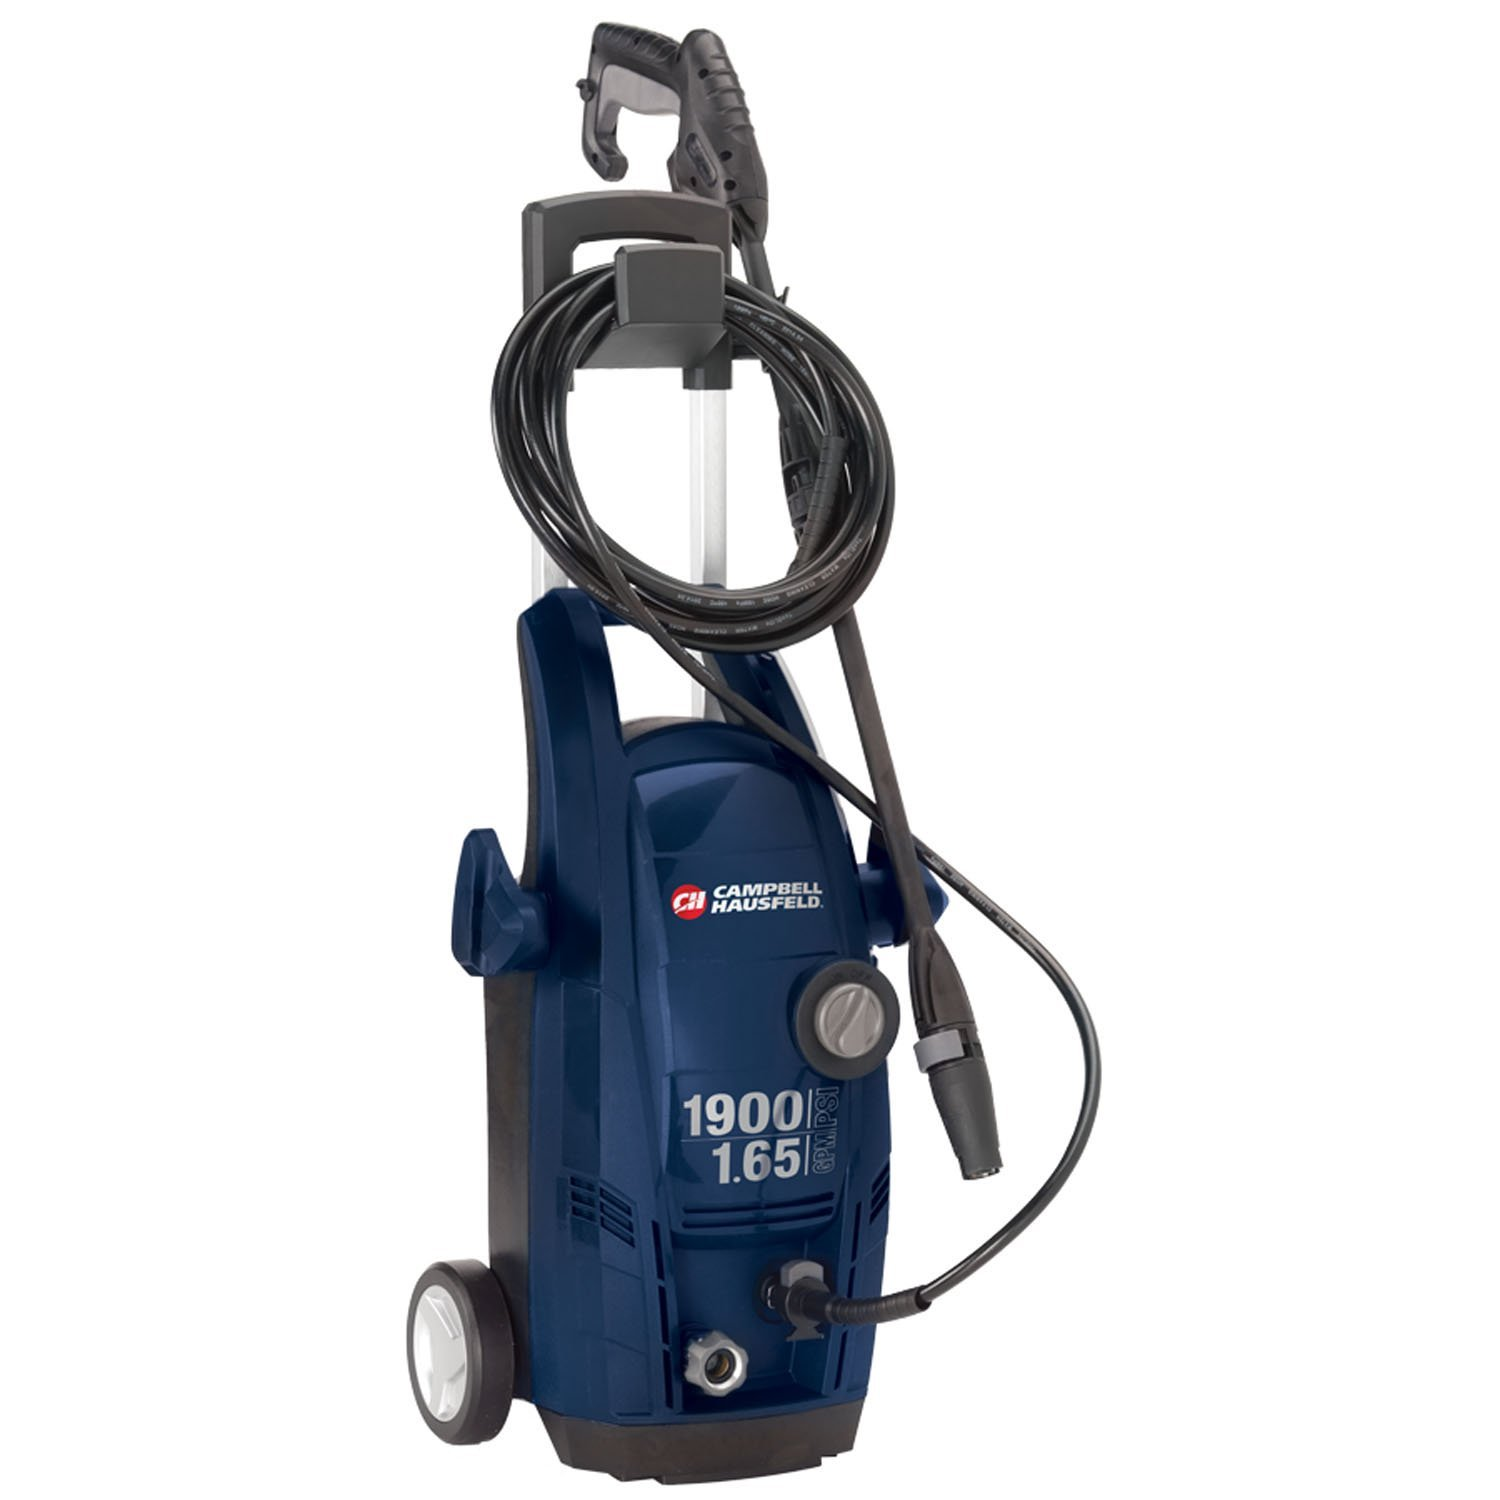 Campbell Hausfeld Pressure Washer Only $93.20! (Reg. $180!)